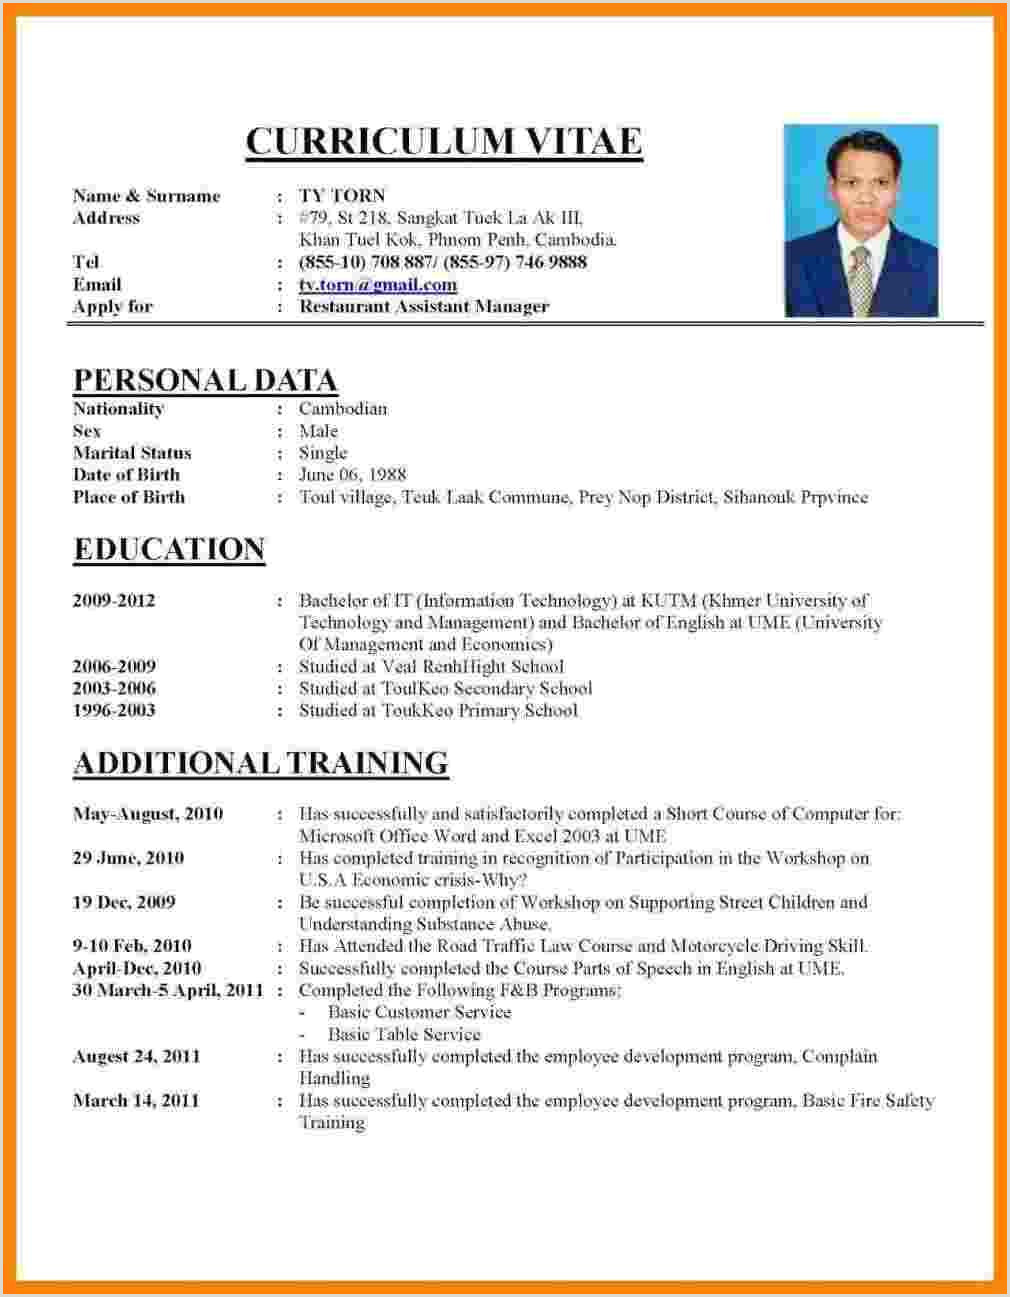 Cv Template Job Application My saves